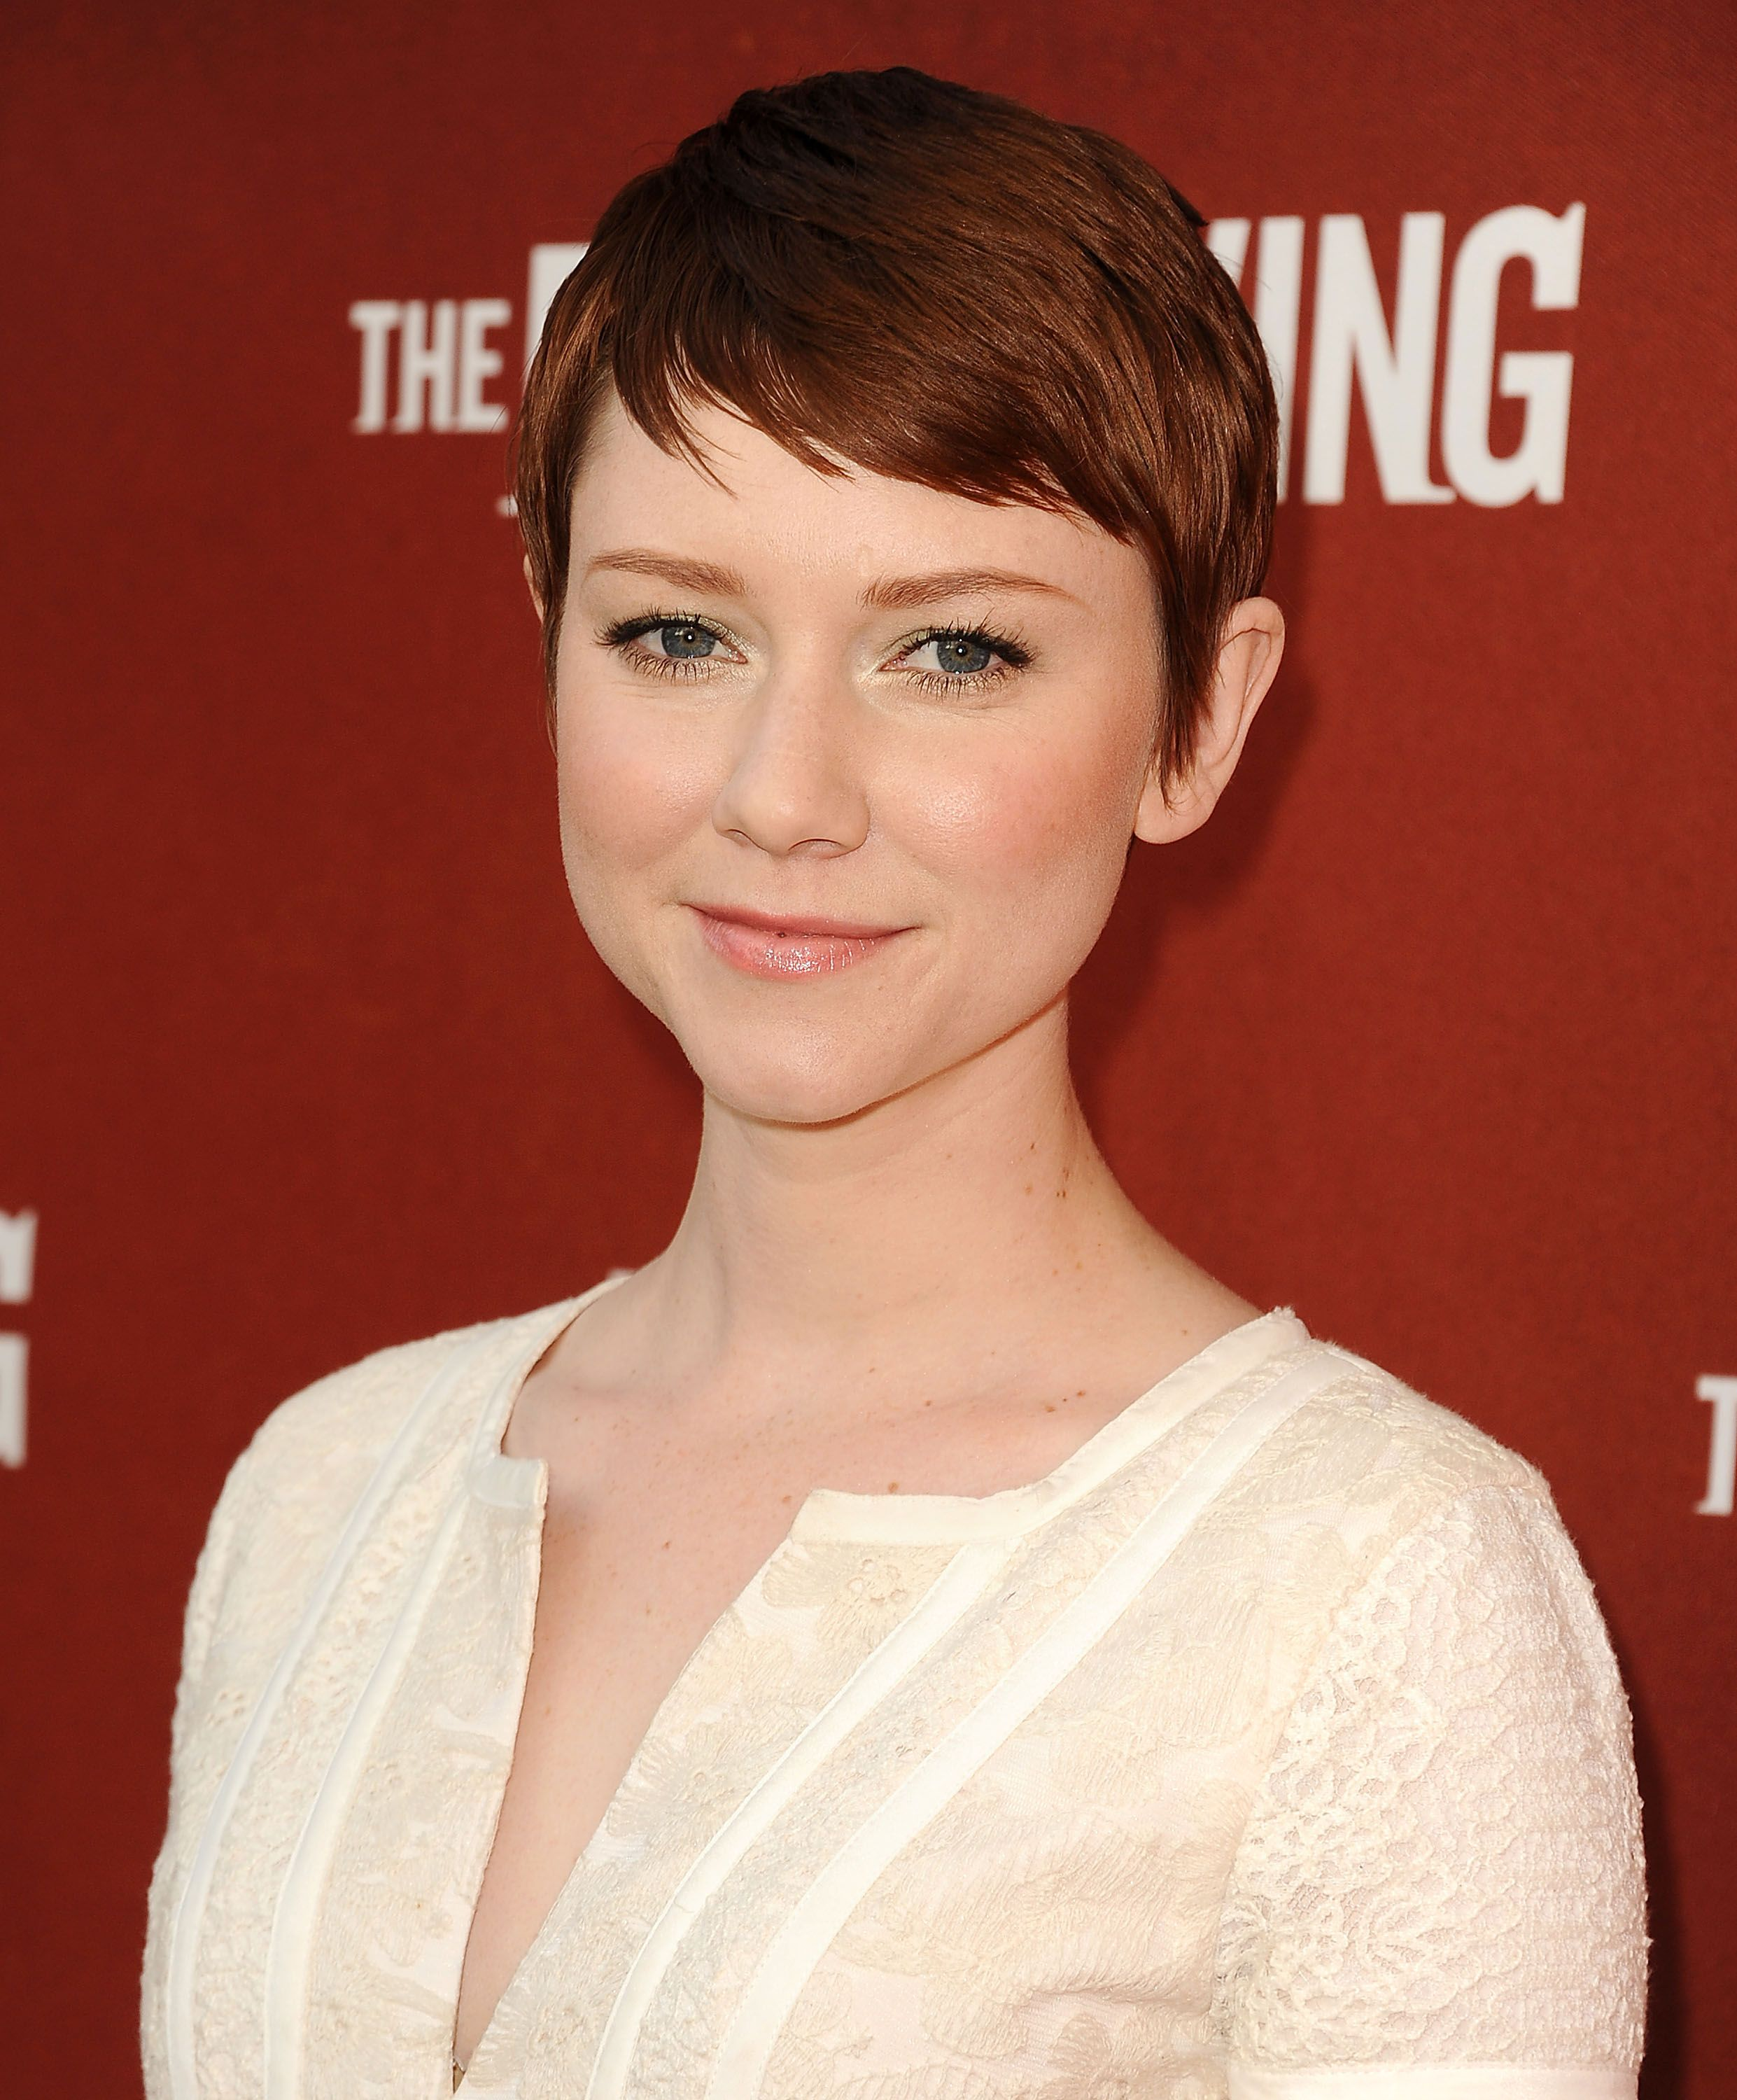 Pixie Cuts For 2018 34 Celebrity Hairstyle Ideas For Women